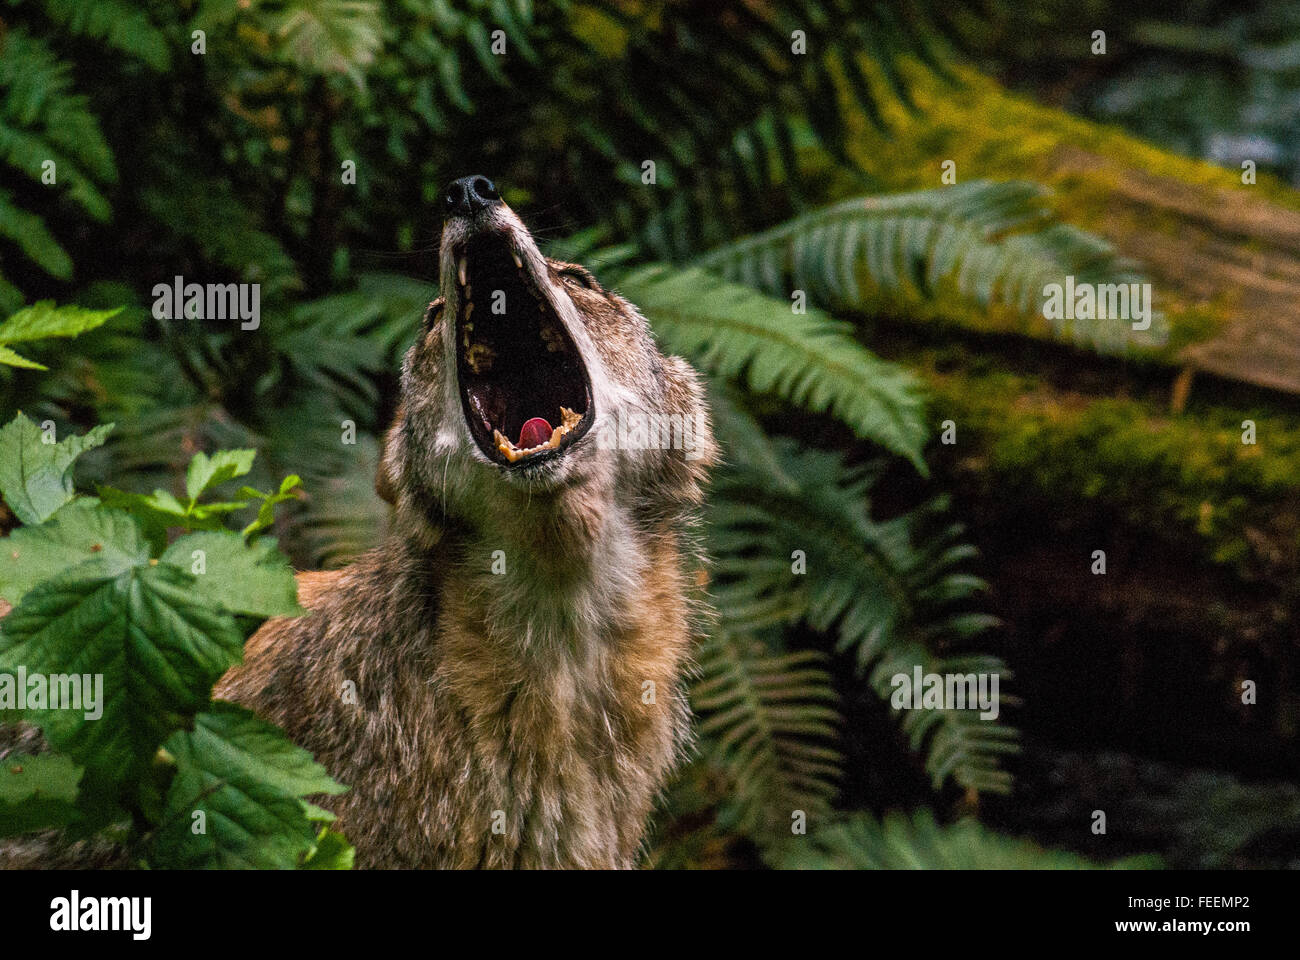 A captive Coyote (Canis latrans) howls to its pack mates. - Stock Image